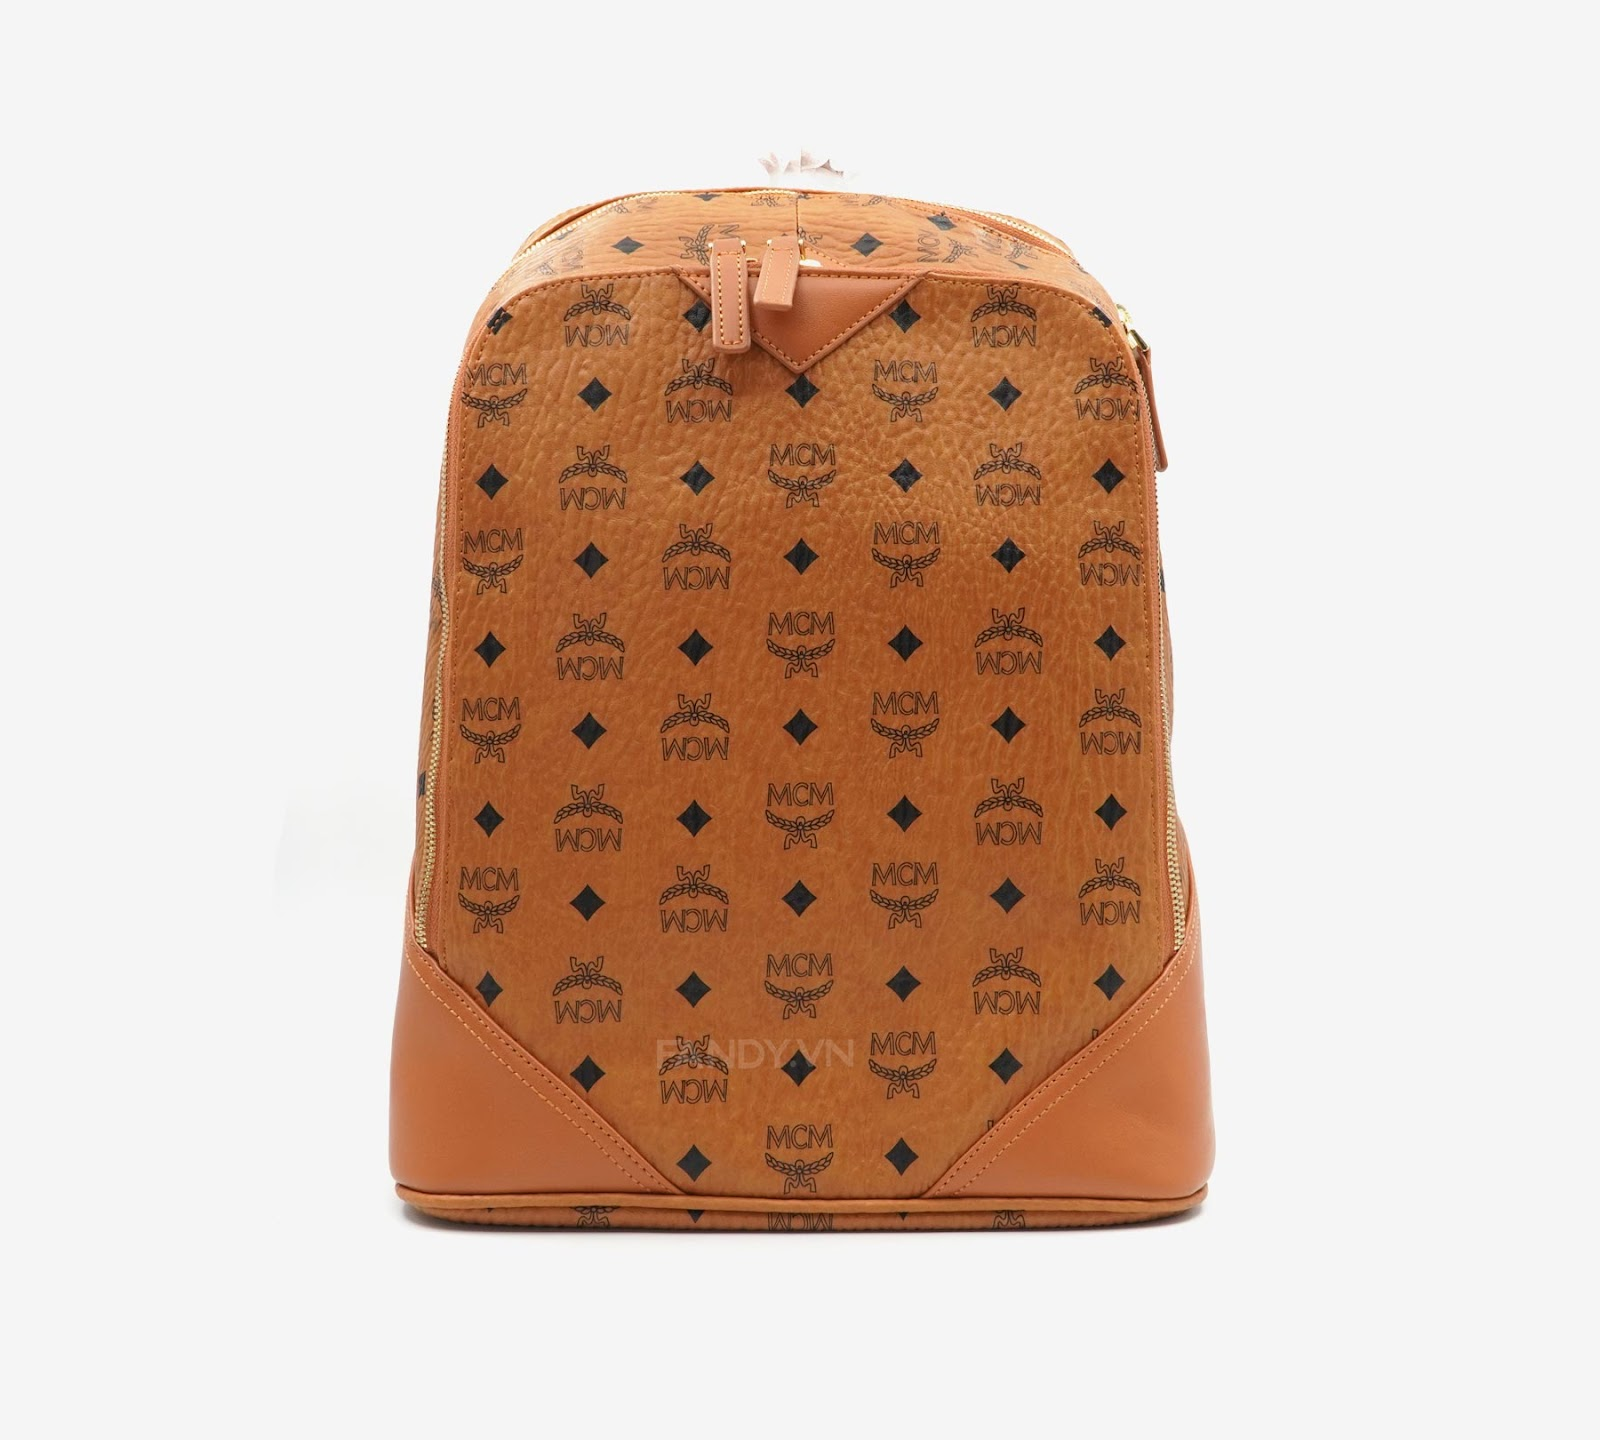 Balo Louis Vuitton x MCM Duke Nappa